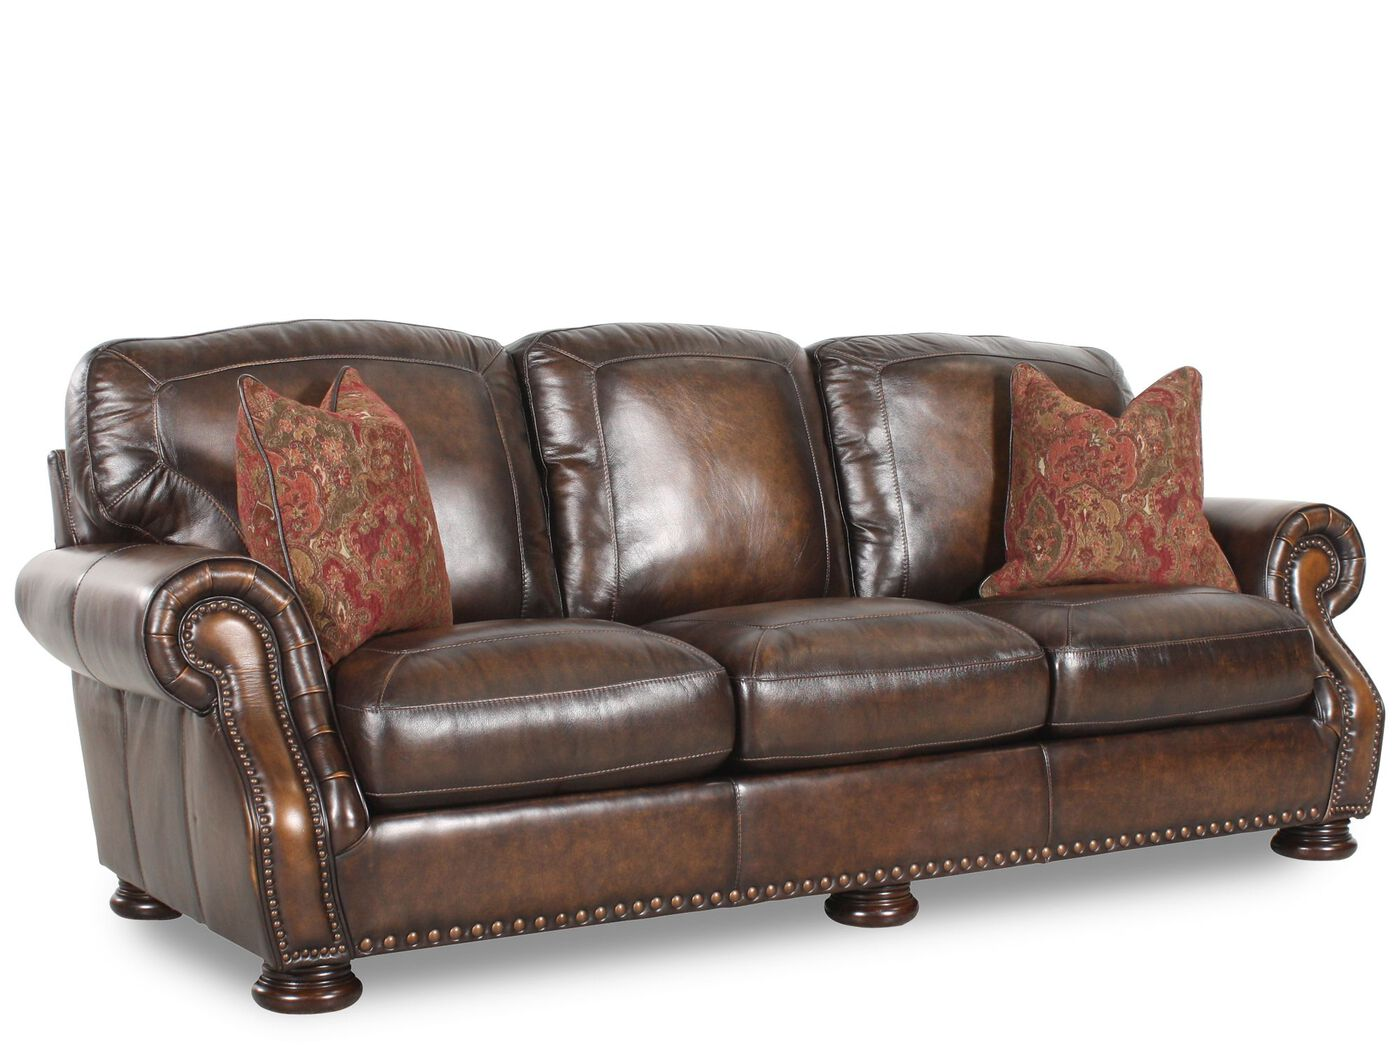 Mathis Brothers Leather Sofas Leather Rolled Arm 88 Sofa ...